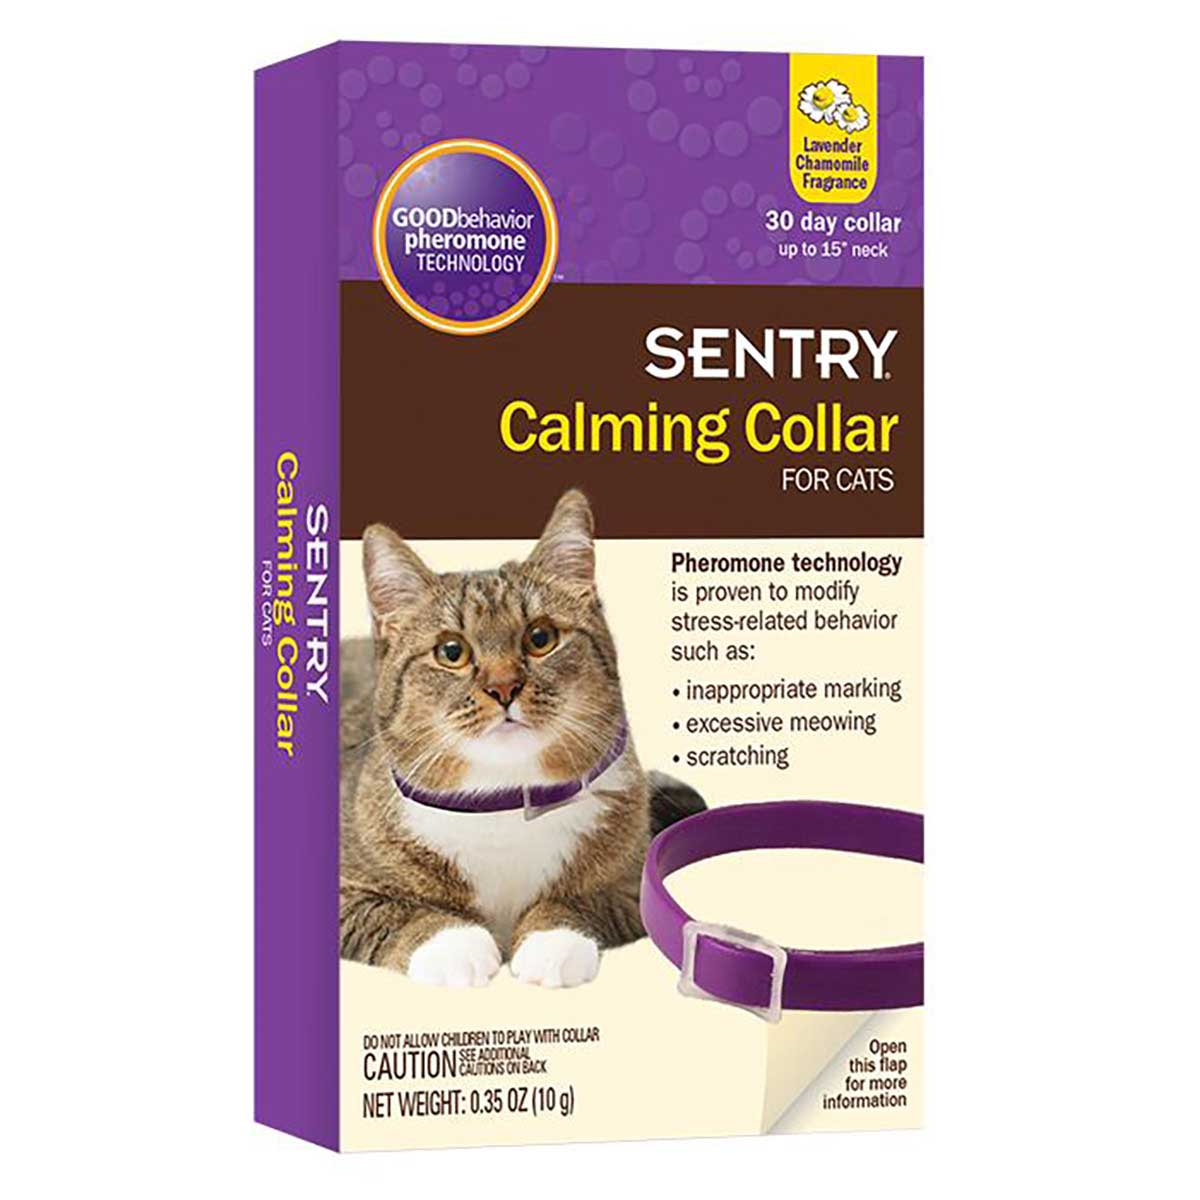 Sentry Calming Collars For Kittens and Cats Fits Necks Up To 15 inches